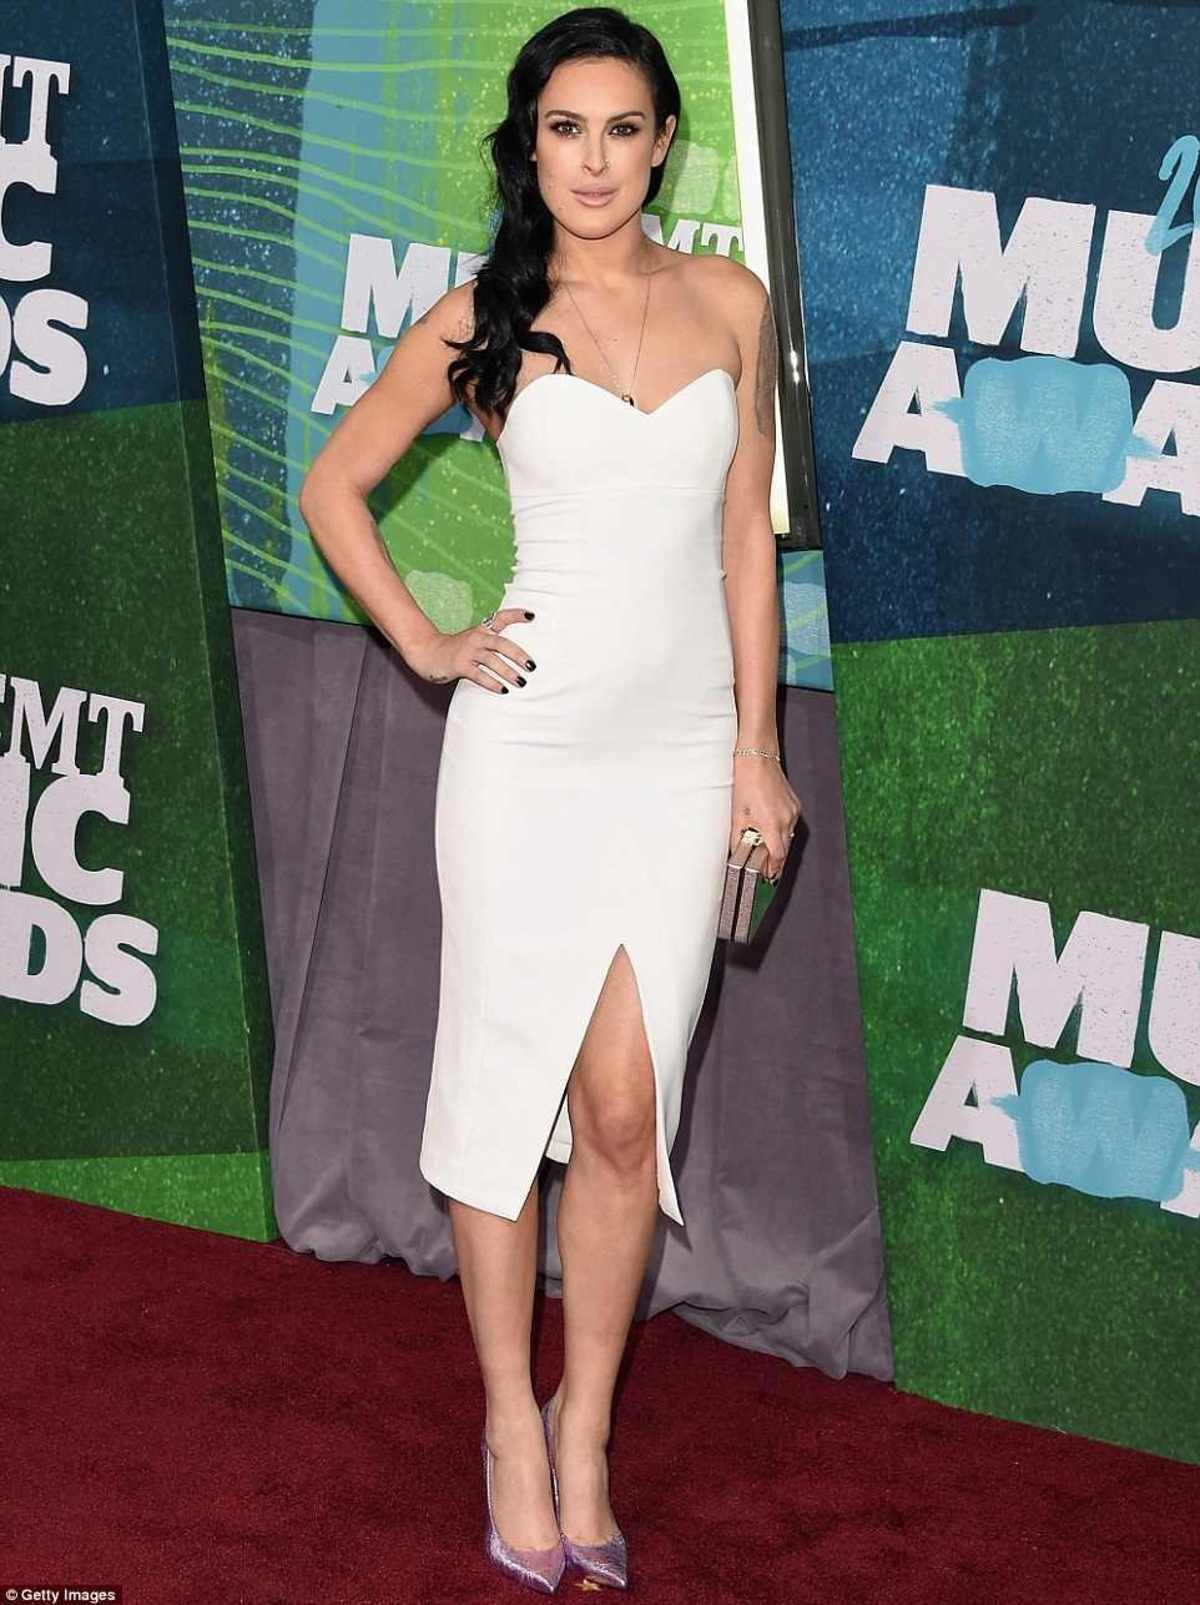 2984ED9000000578-0-Wonder_in_white_Rumer_Willis_led_the_glam_parade_at_the_2015_CMT-a-61_1433984342407